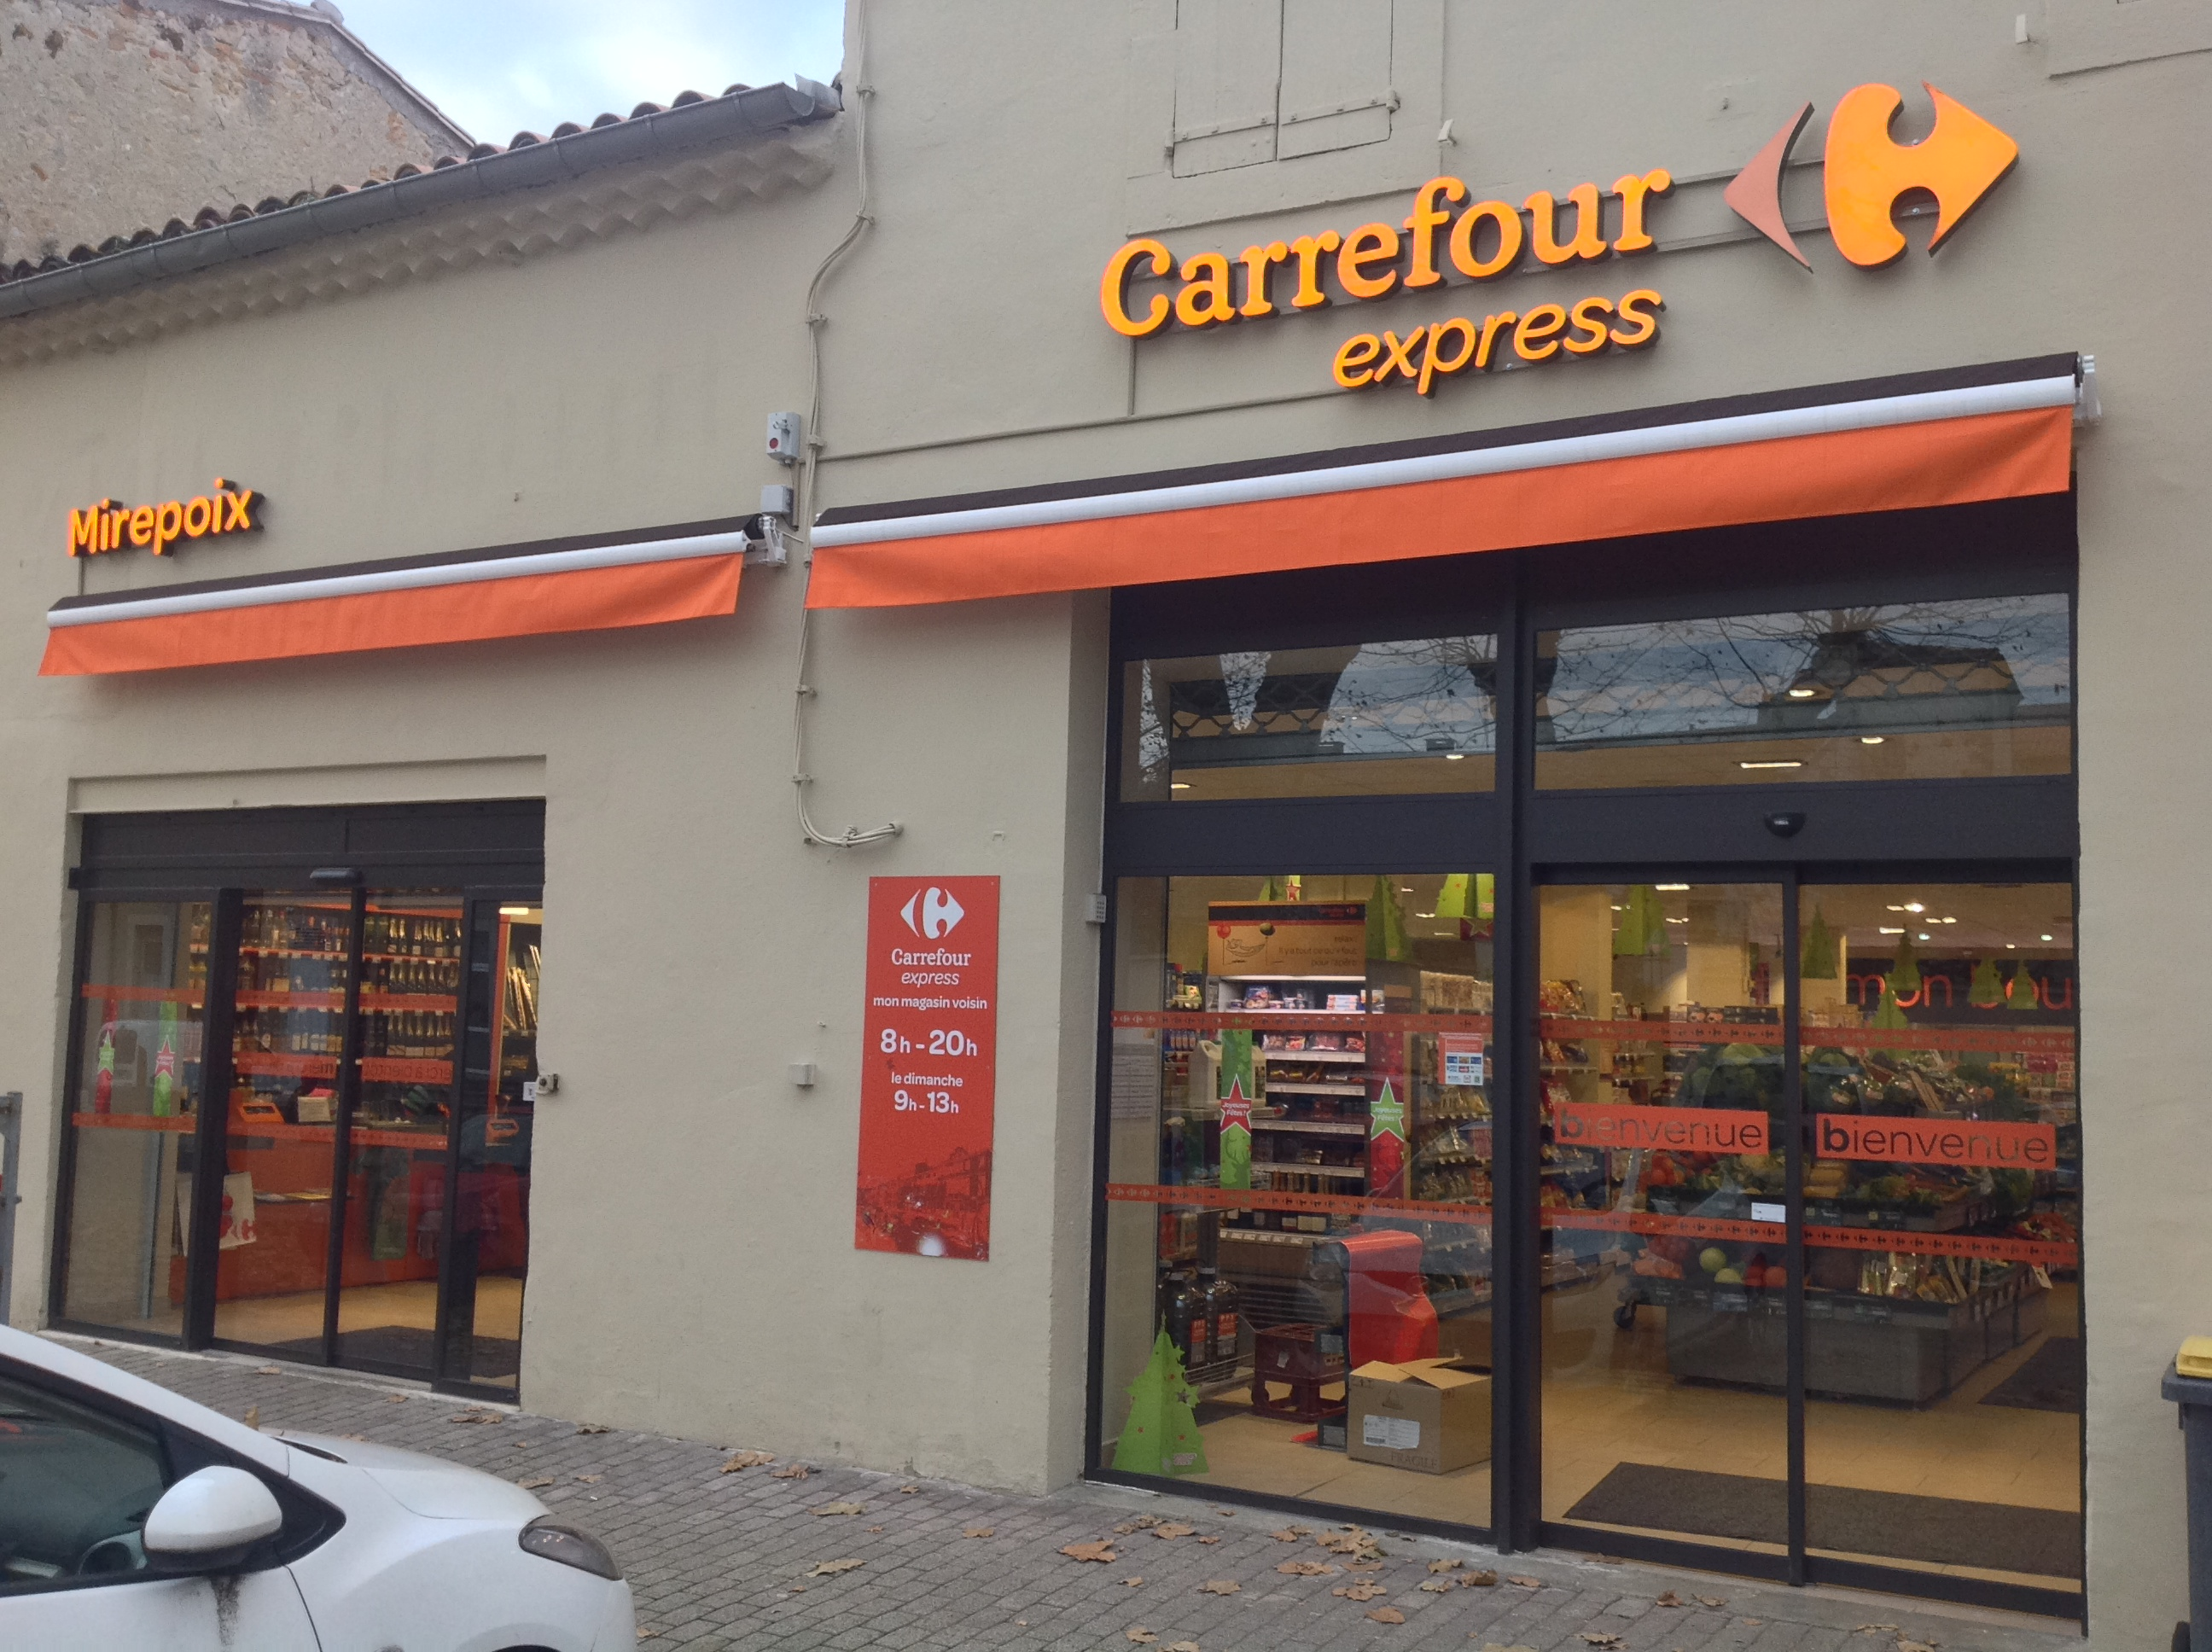 Cyber Cafe Saint Quentin